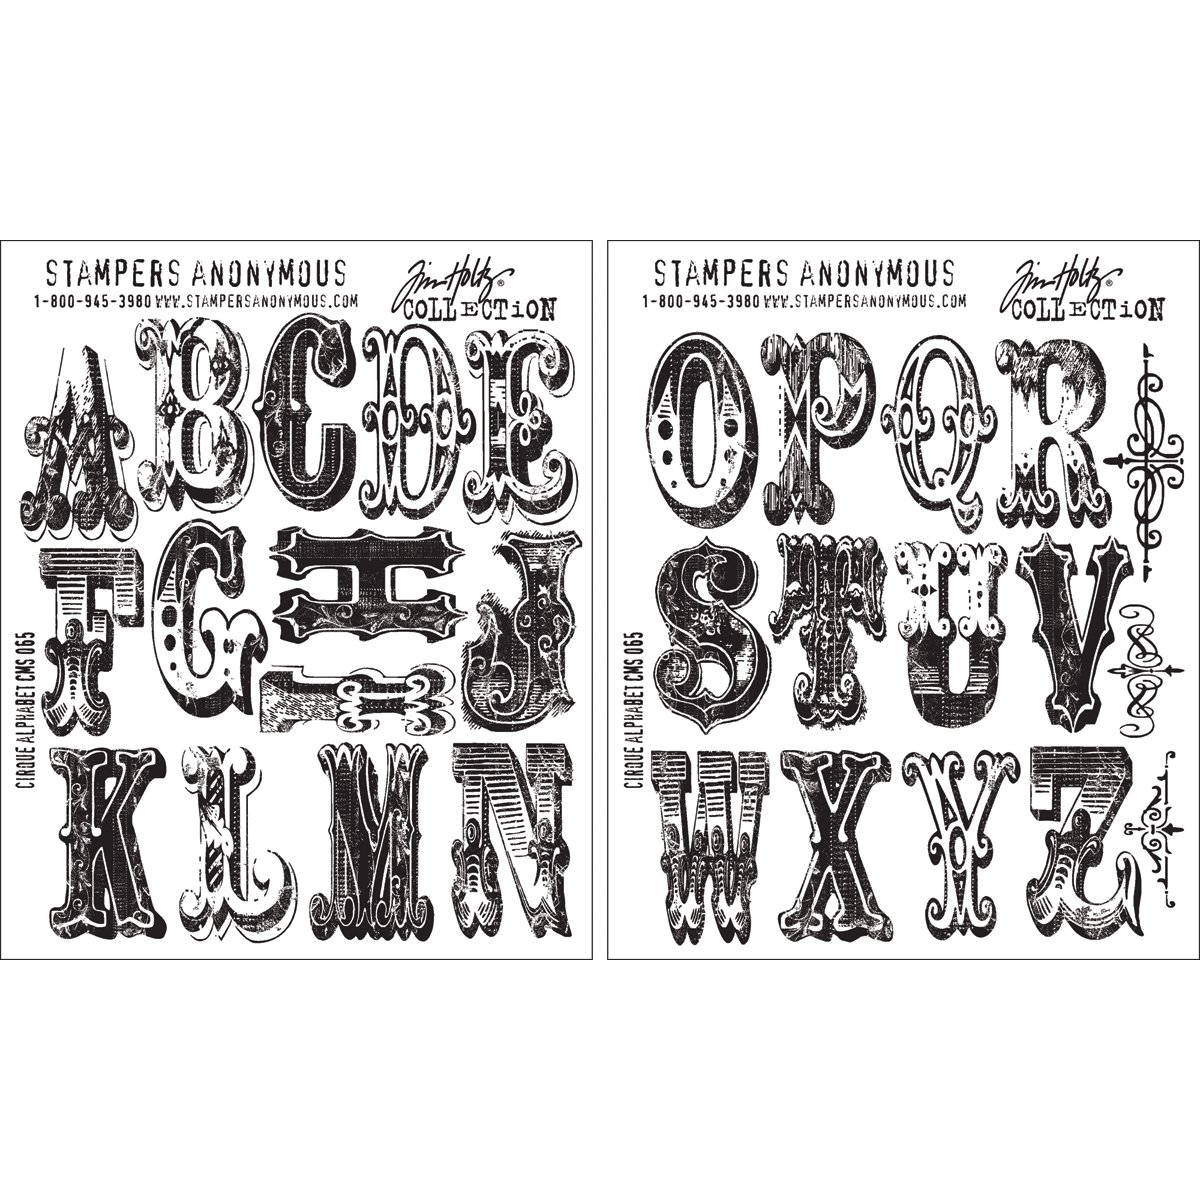 Stampers Anonymous Tim Holtz Cling Rubber Stamp, 7 by 8.5-Inch, Cirque Alphabet by Stampers Anonymous (Image #1)